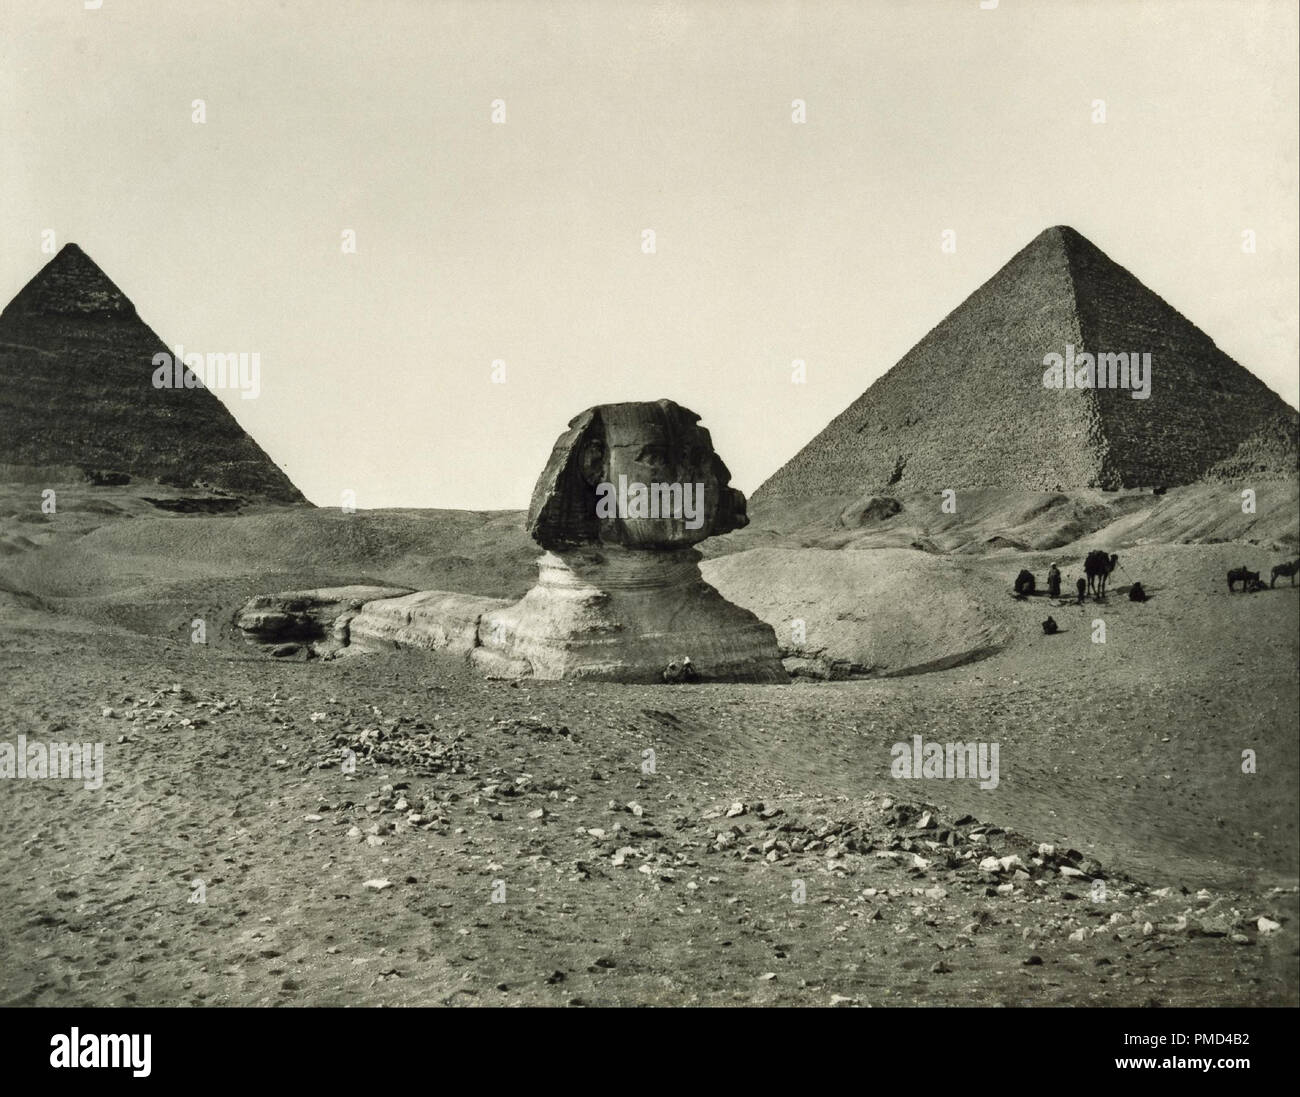 The pyramids are still some of the largest man-made structures ever built...